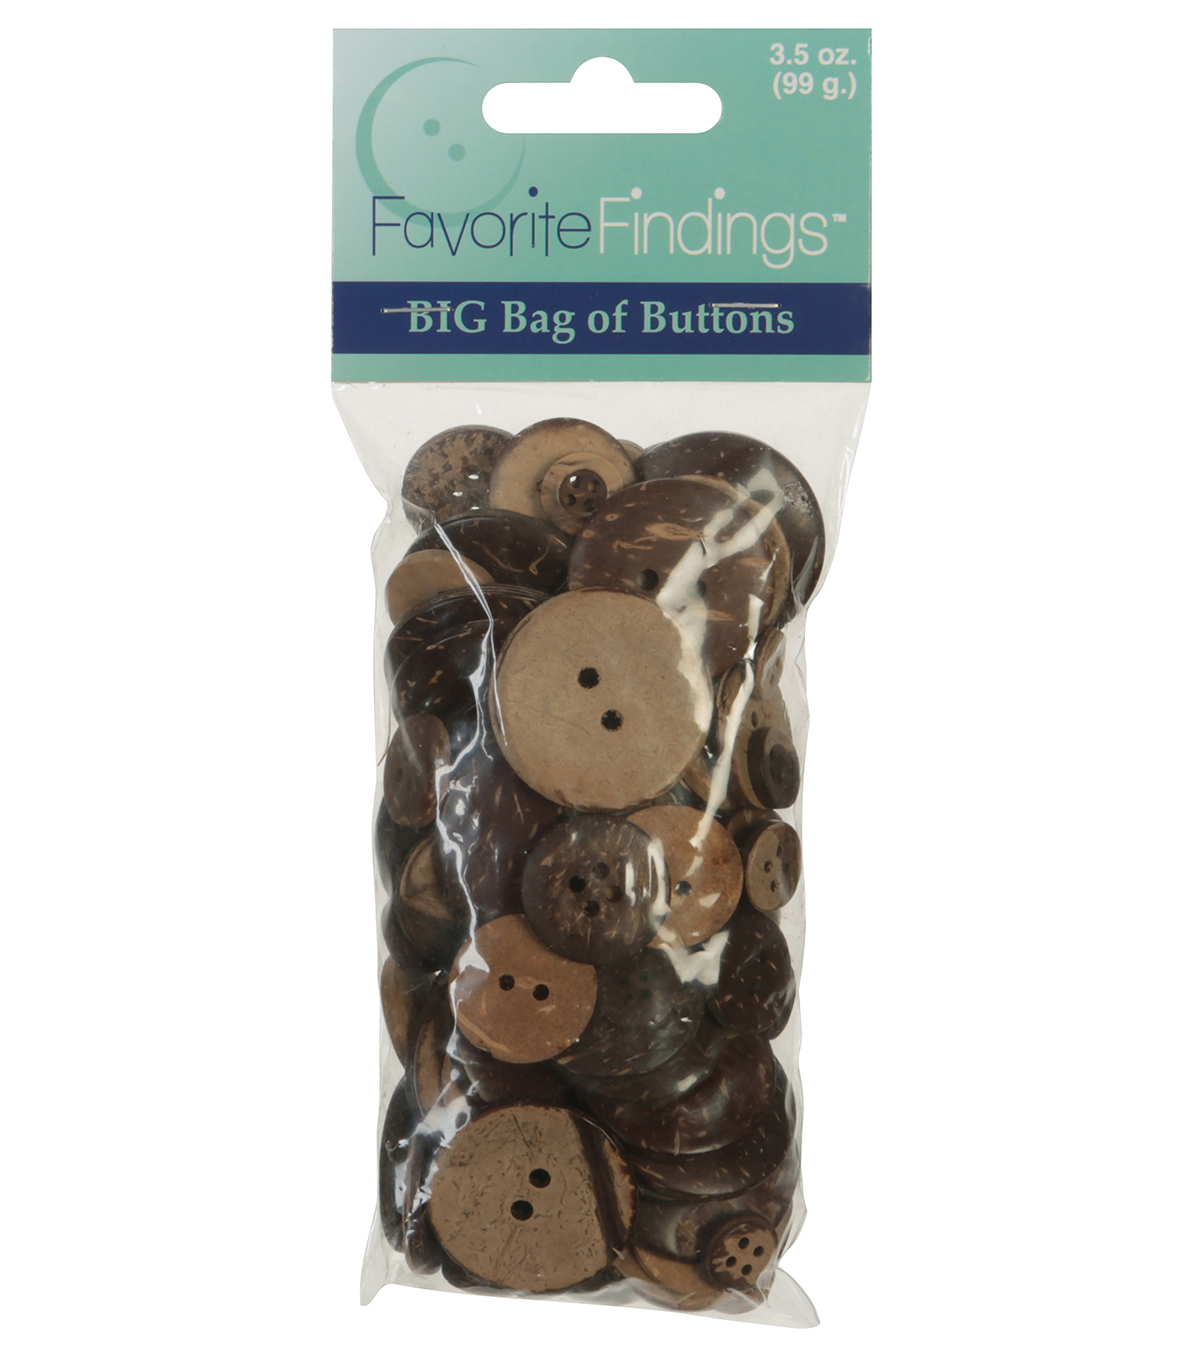 Favorite Findings 3.5oz Value Pack Buttons-Coconut Brown